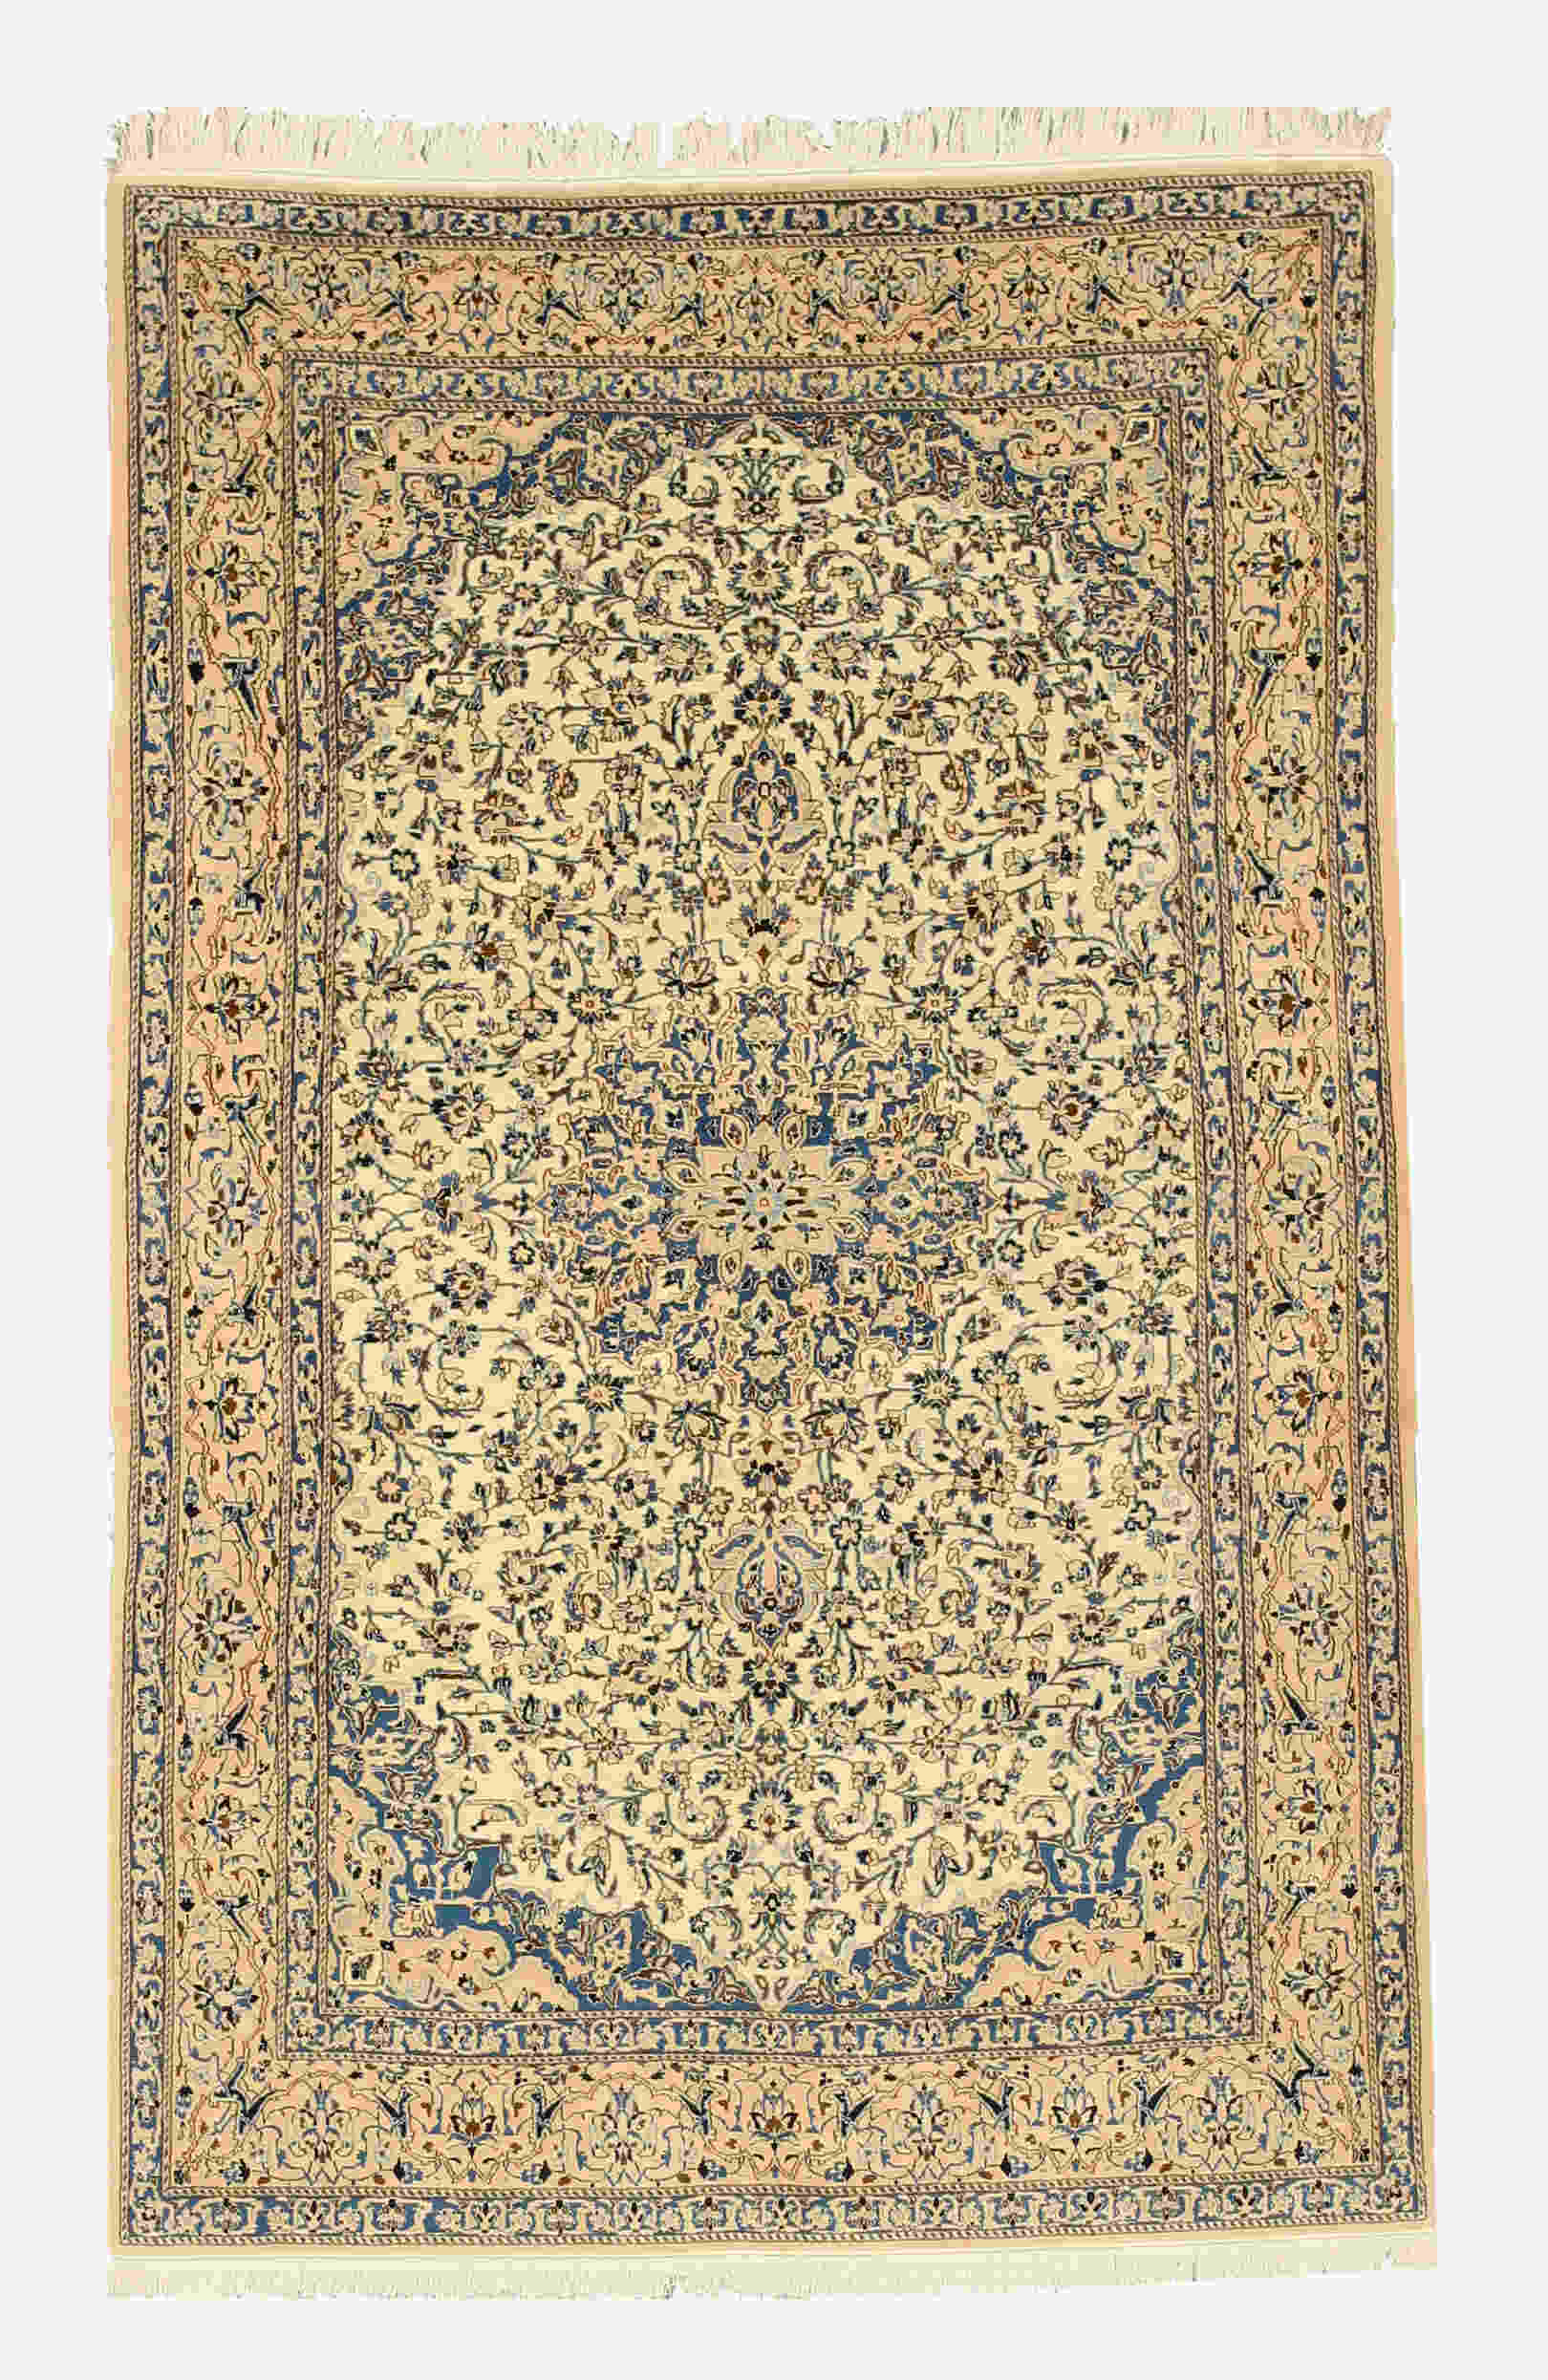 Eorc 4042 Ivory Hand Knotted Wool & Silk Naiin Rug